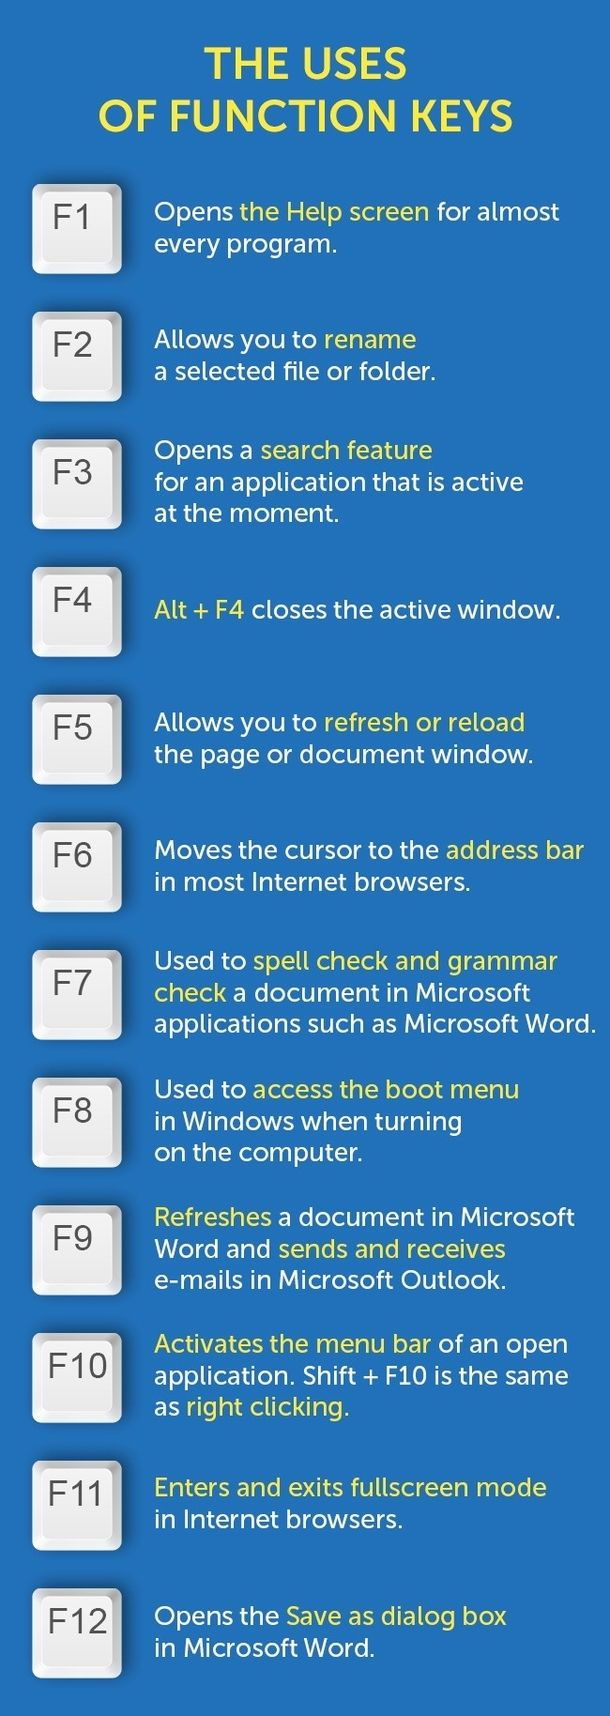 605 Best Pc Stuff Images On Pinterest Computer Tips Office Inside A Diagram Picture Of F1 To F12 Heres How The Function Keys Your Keyboard Can Save You Tons Time